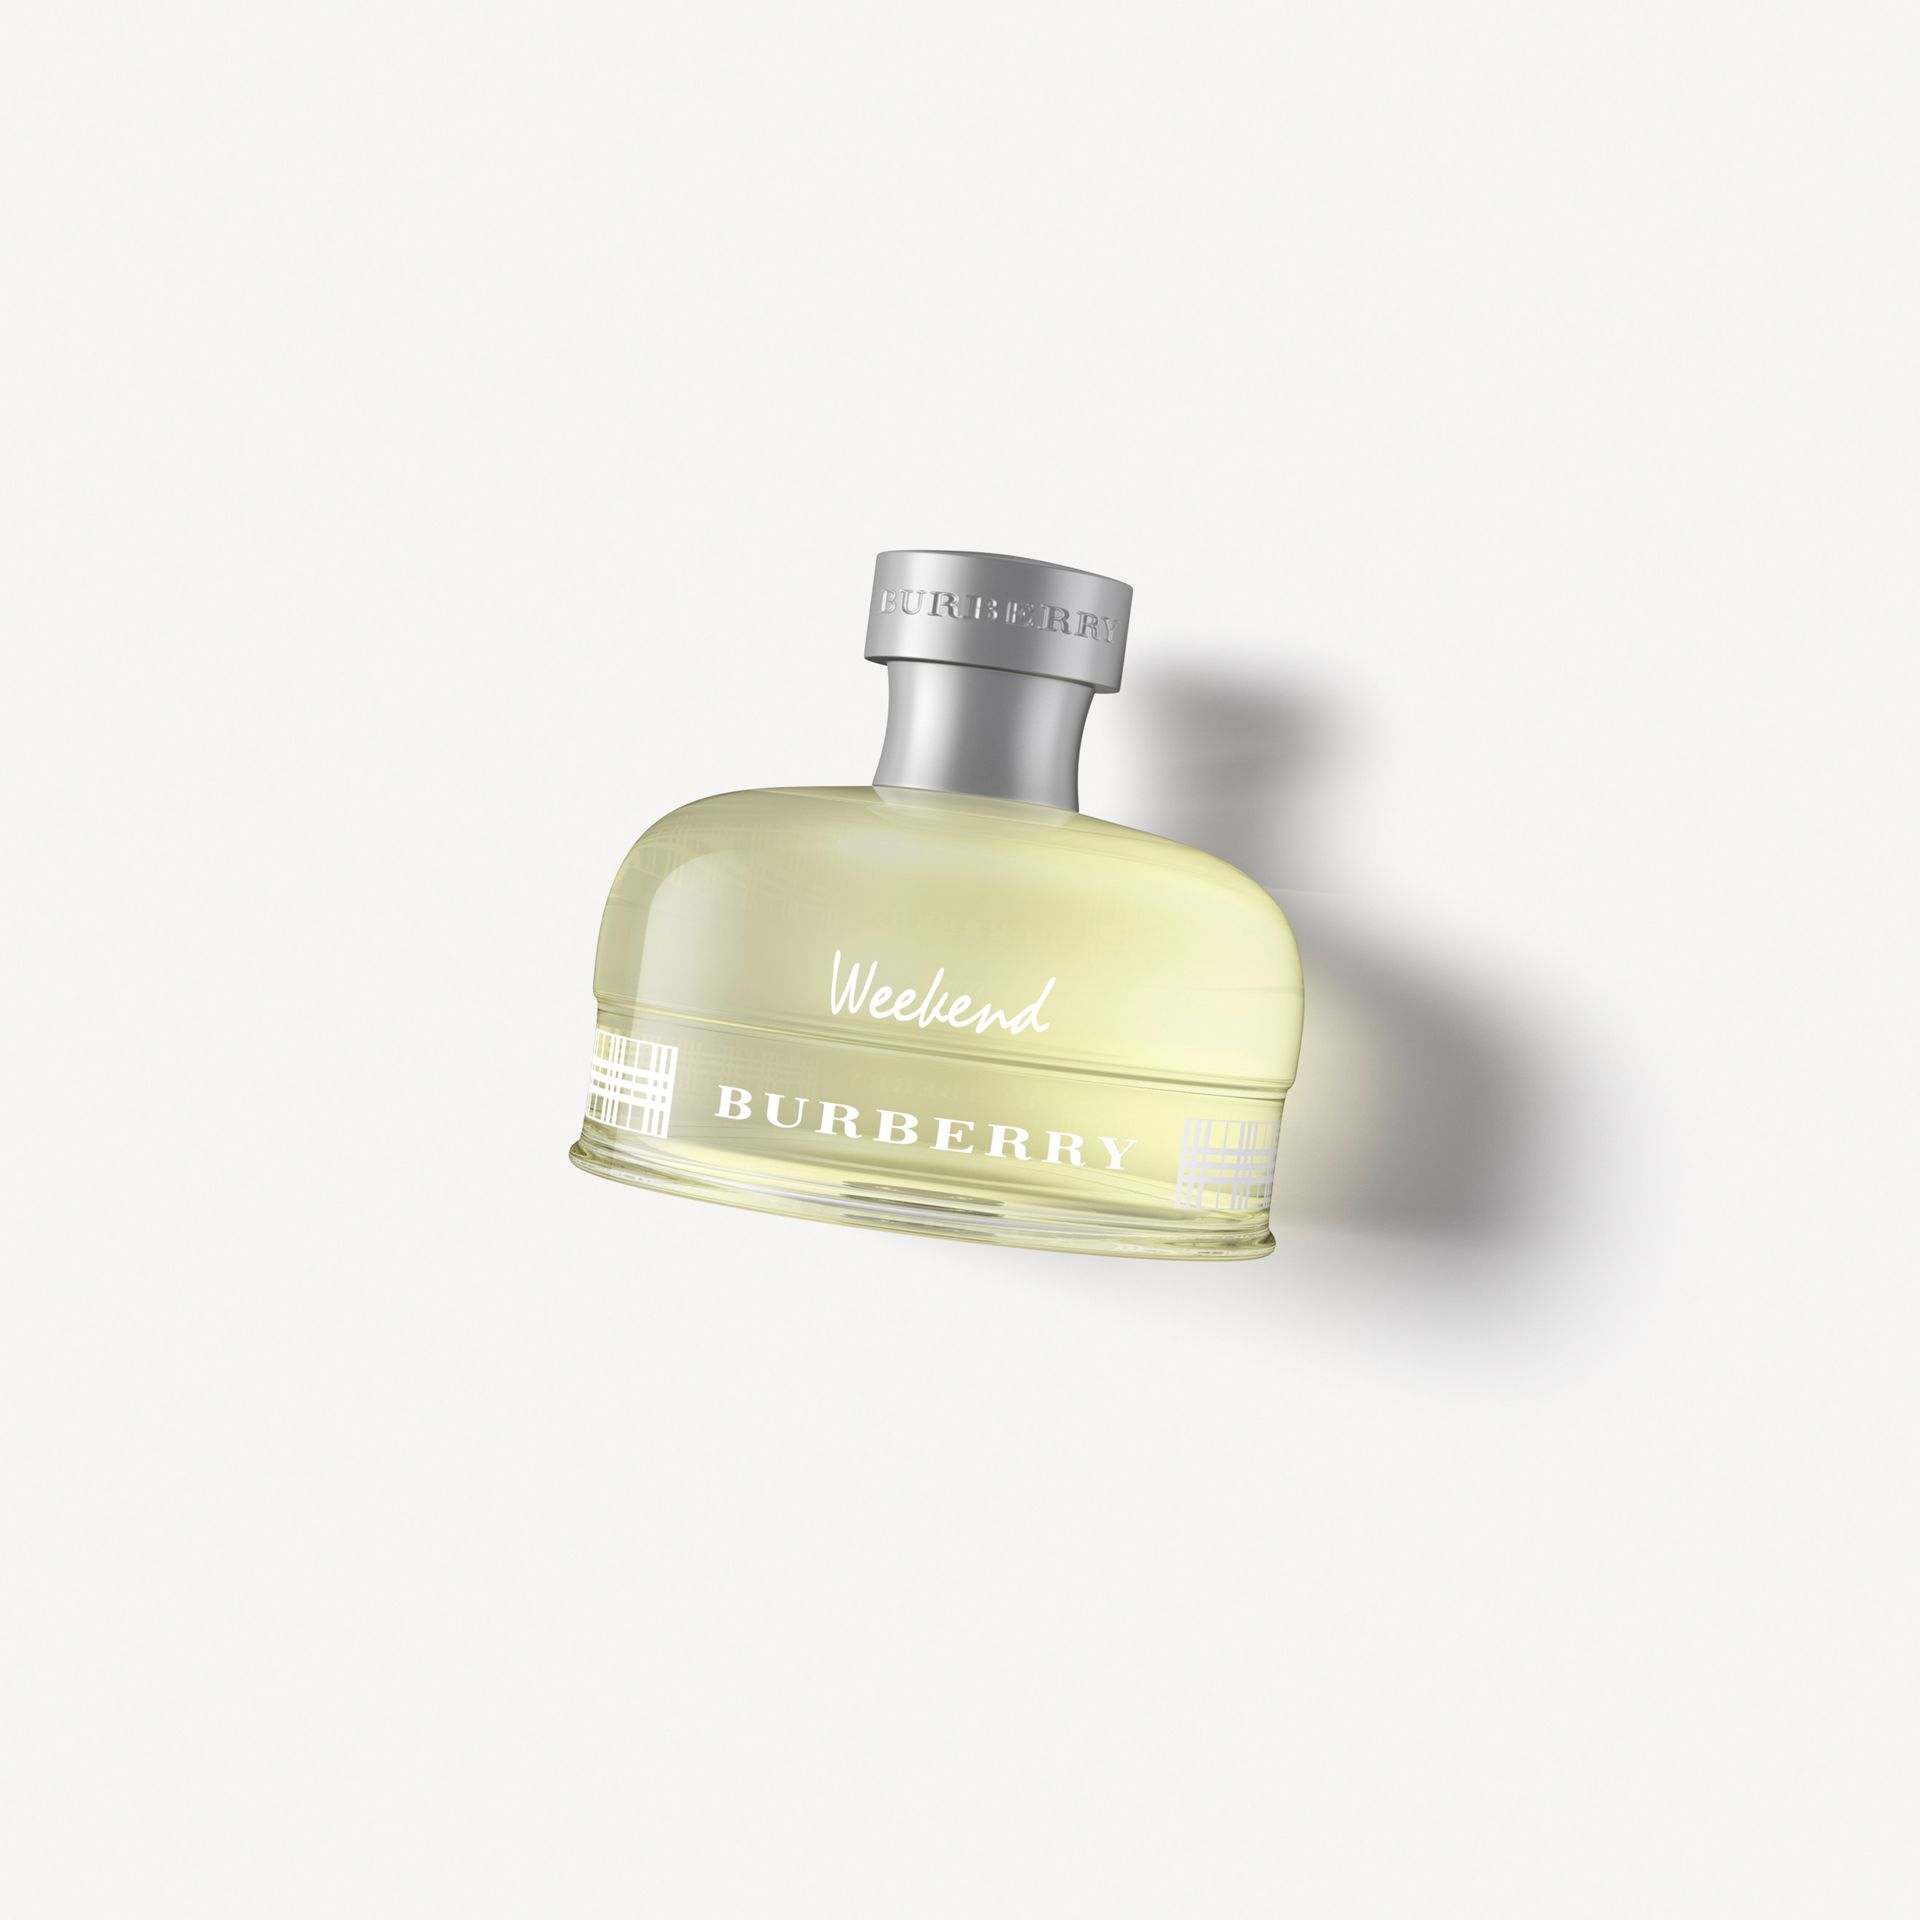 Eau de Parfum Burberry Weekend 100 ml - Femme | Burberry - photo de la galerie 0